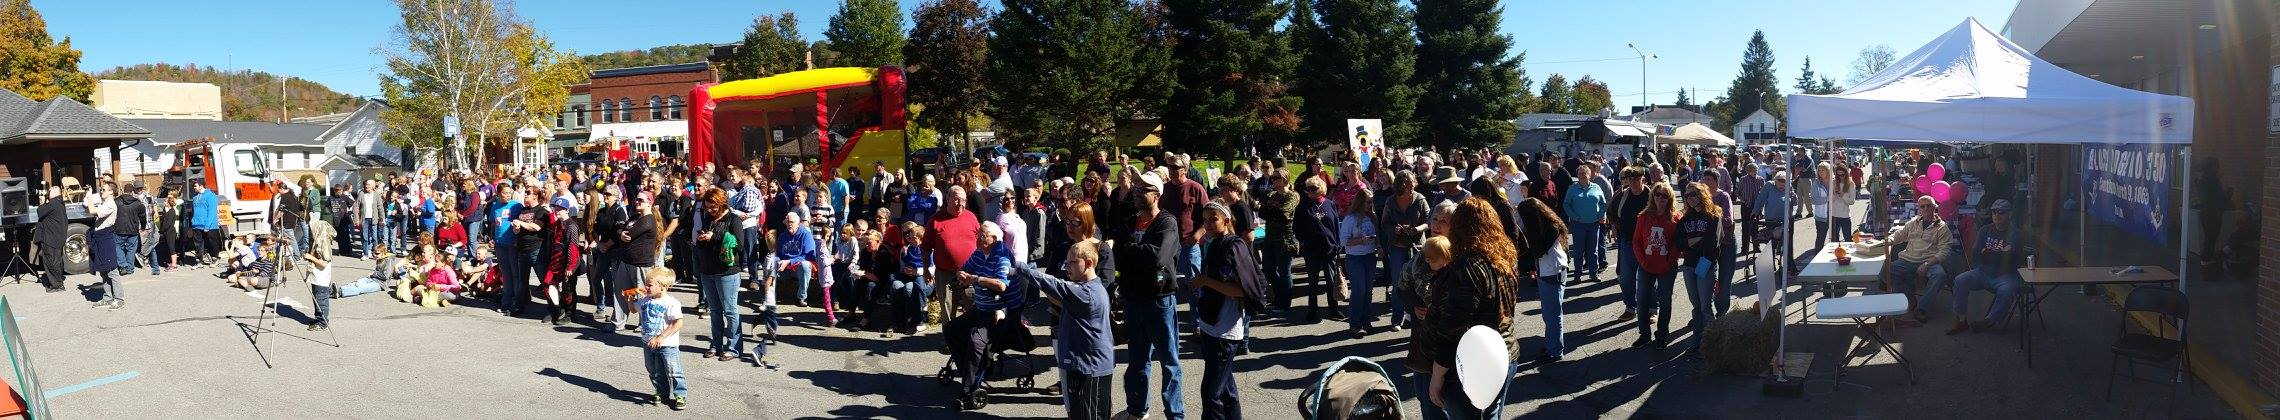 The Crowd at Blossburg Fall Festival